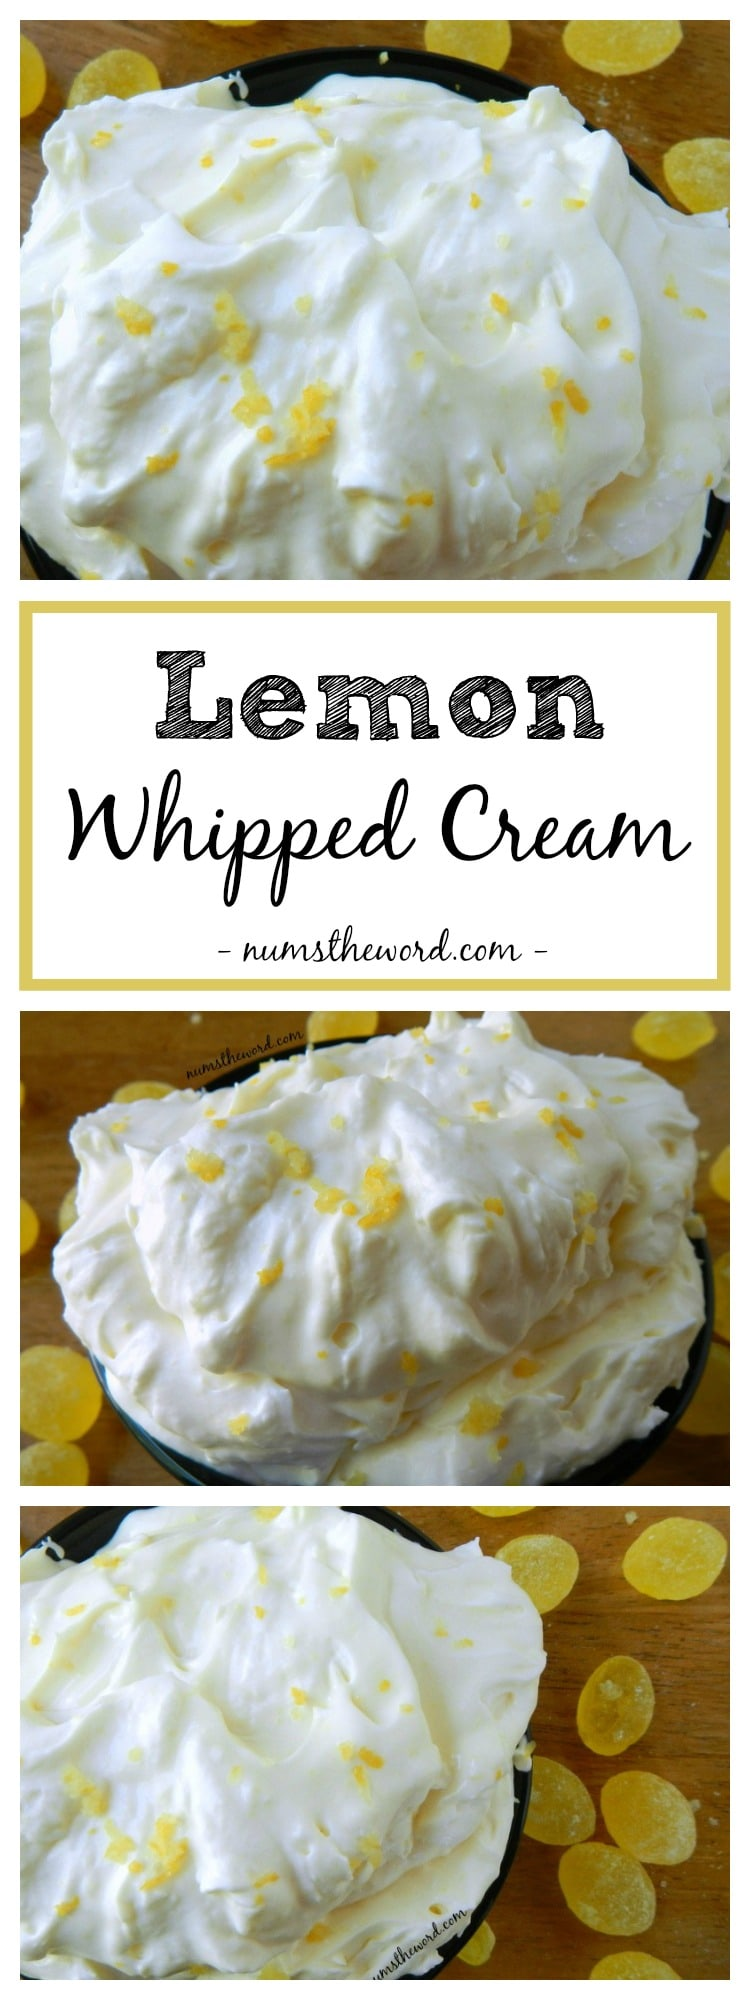 Lemon Whipped Cream